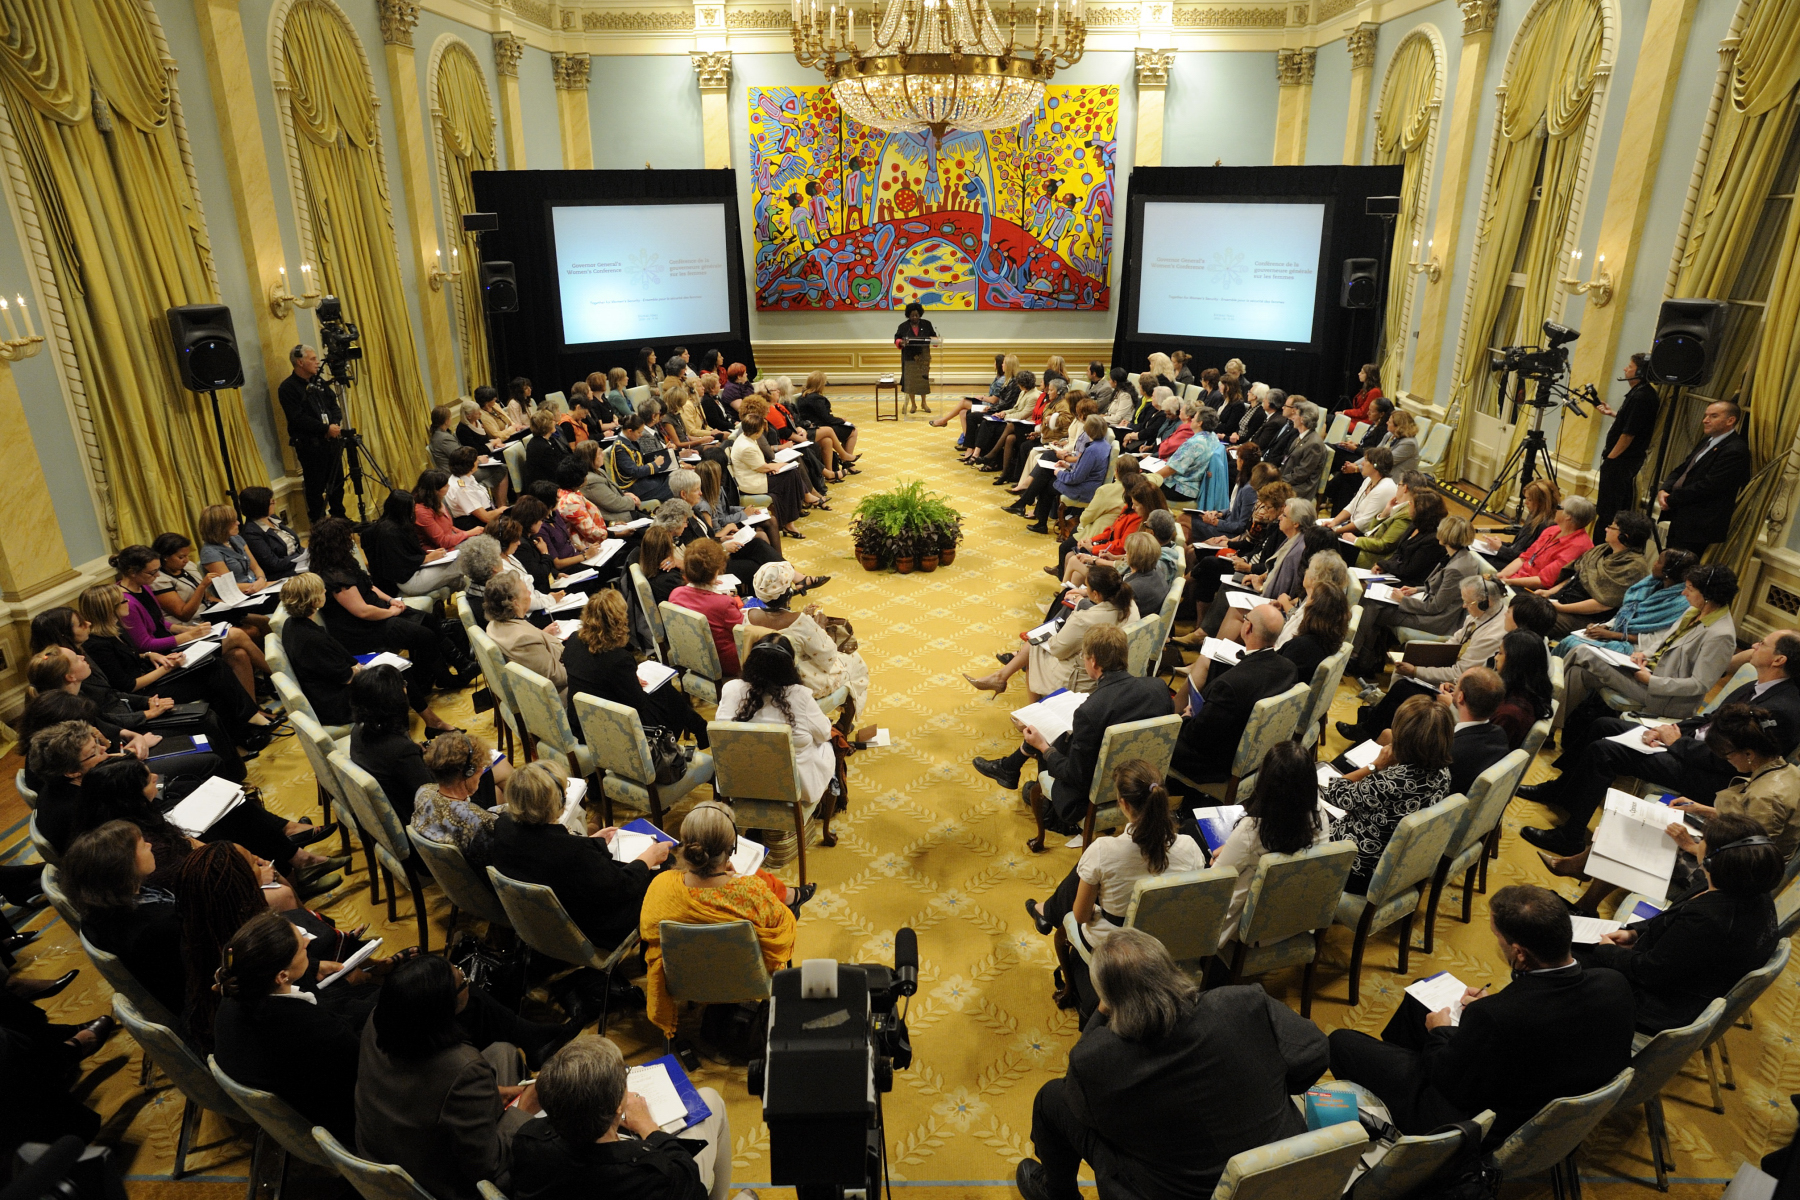 Close to 150 participants attended the event that took place at Rideau Hall.